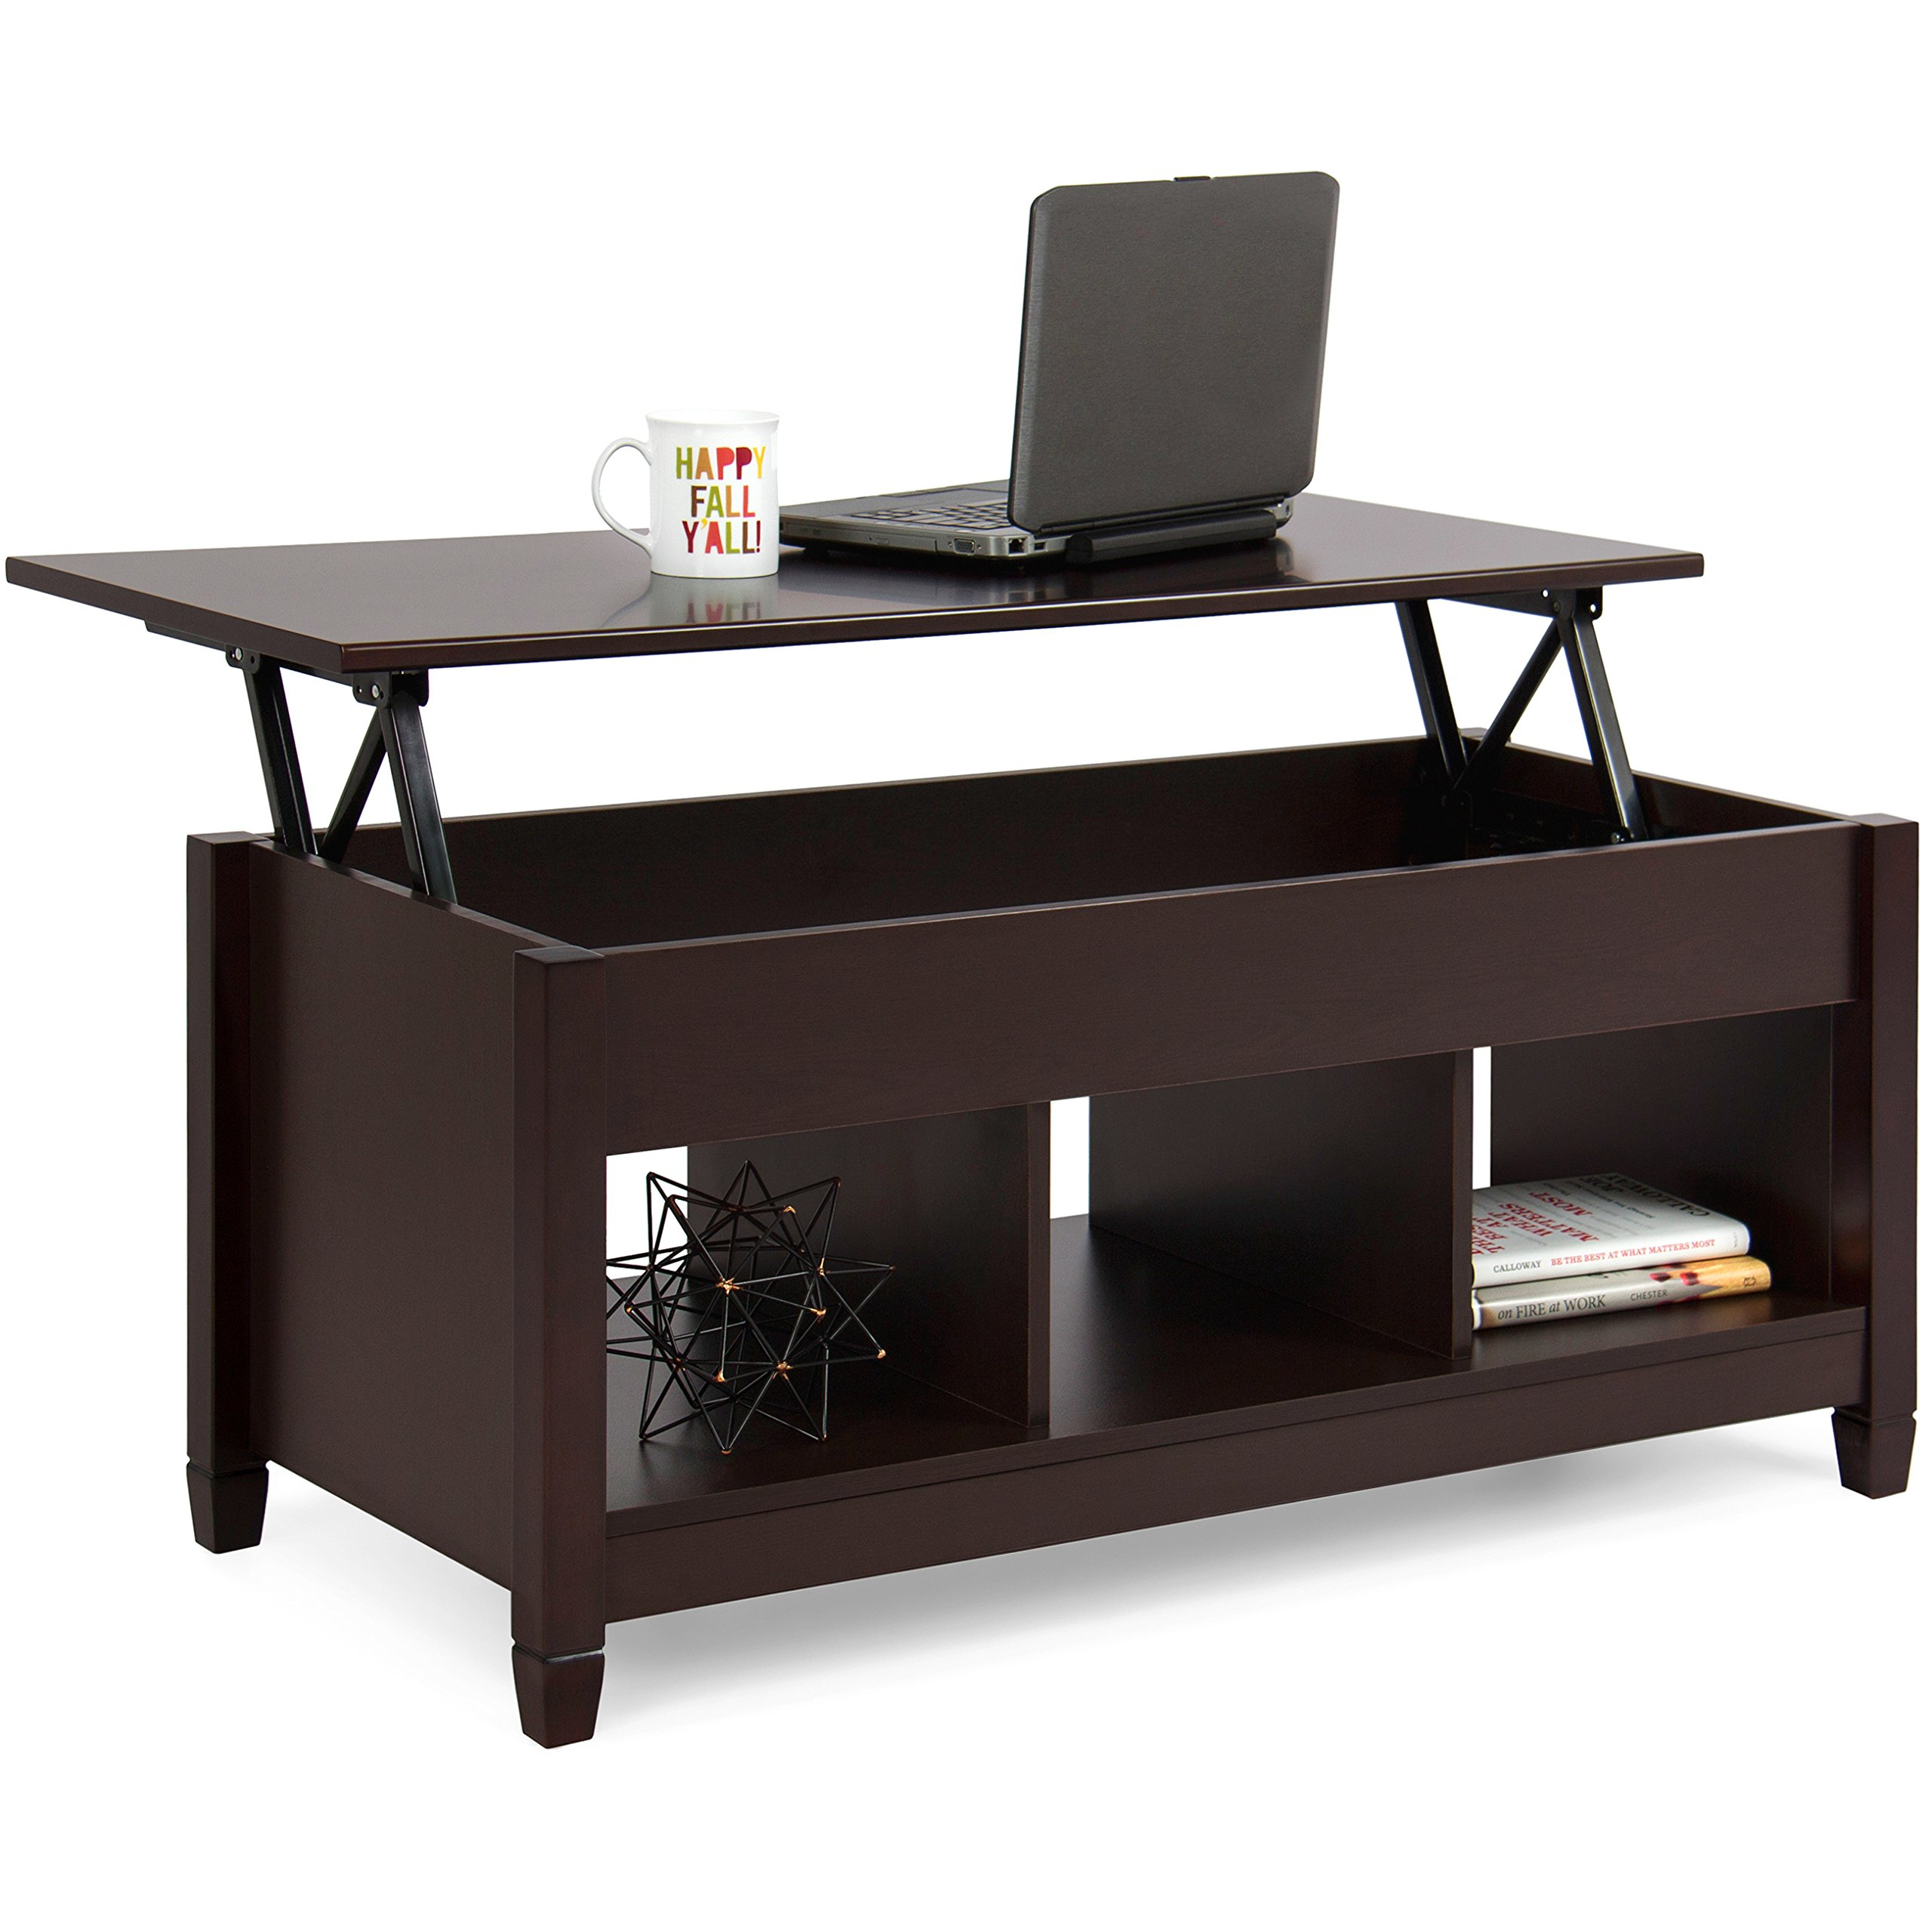 Best Choice Products Wooden Modern Multifunctional Coffee Dining Table for Living Room, Décor, Display with Hidden Storage and Lift Tabletop, Espresso by Best Choice Products